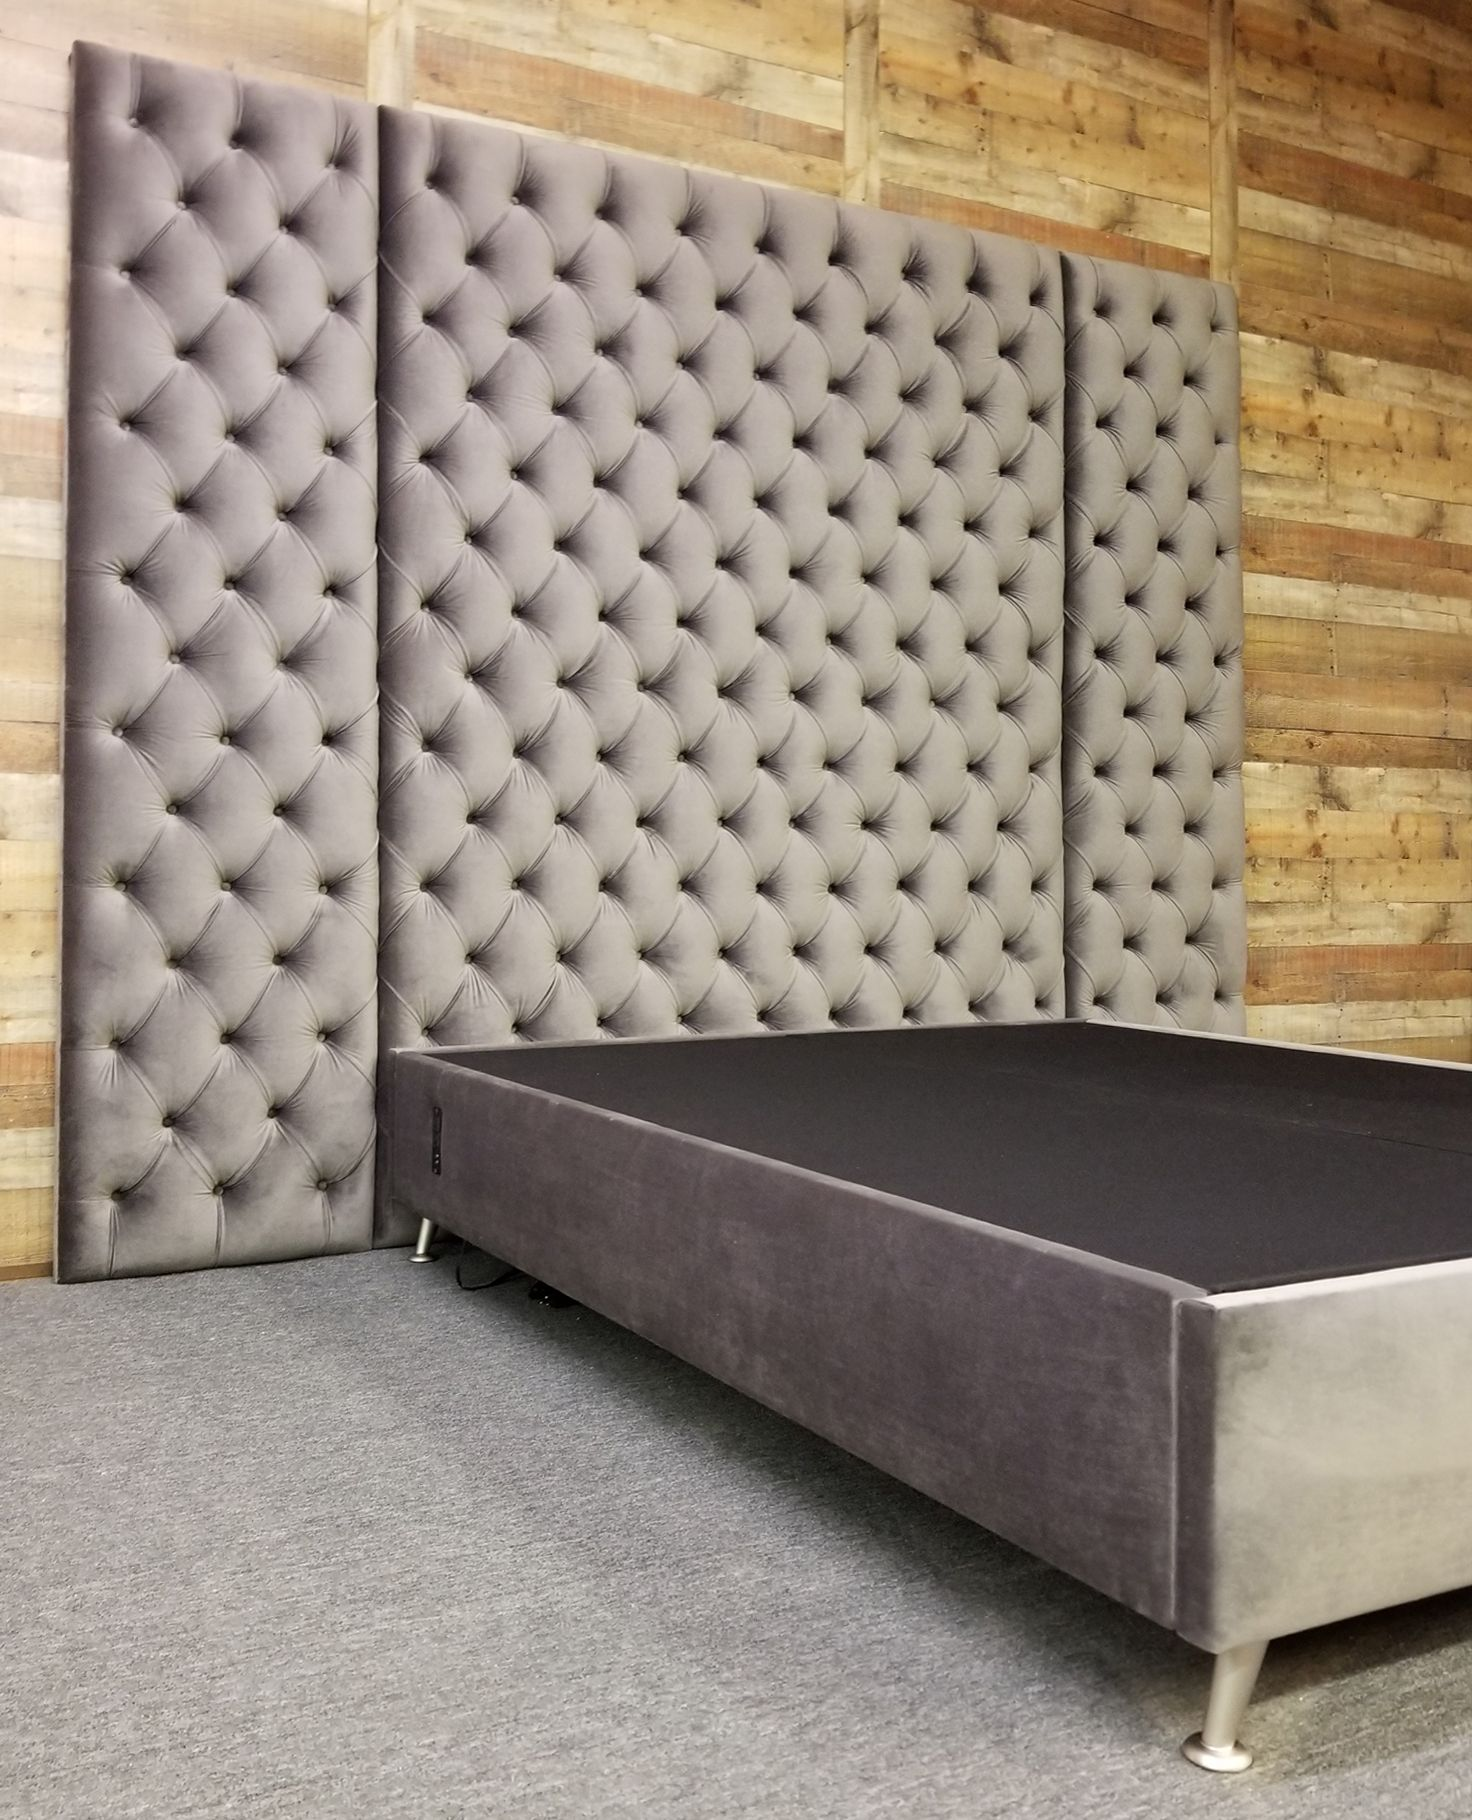 10 Feet Tall Tufted Panels With Bed Frame Upholstered Walls